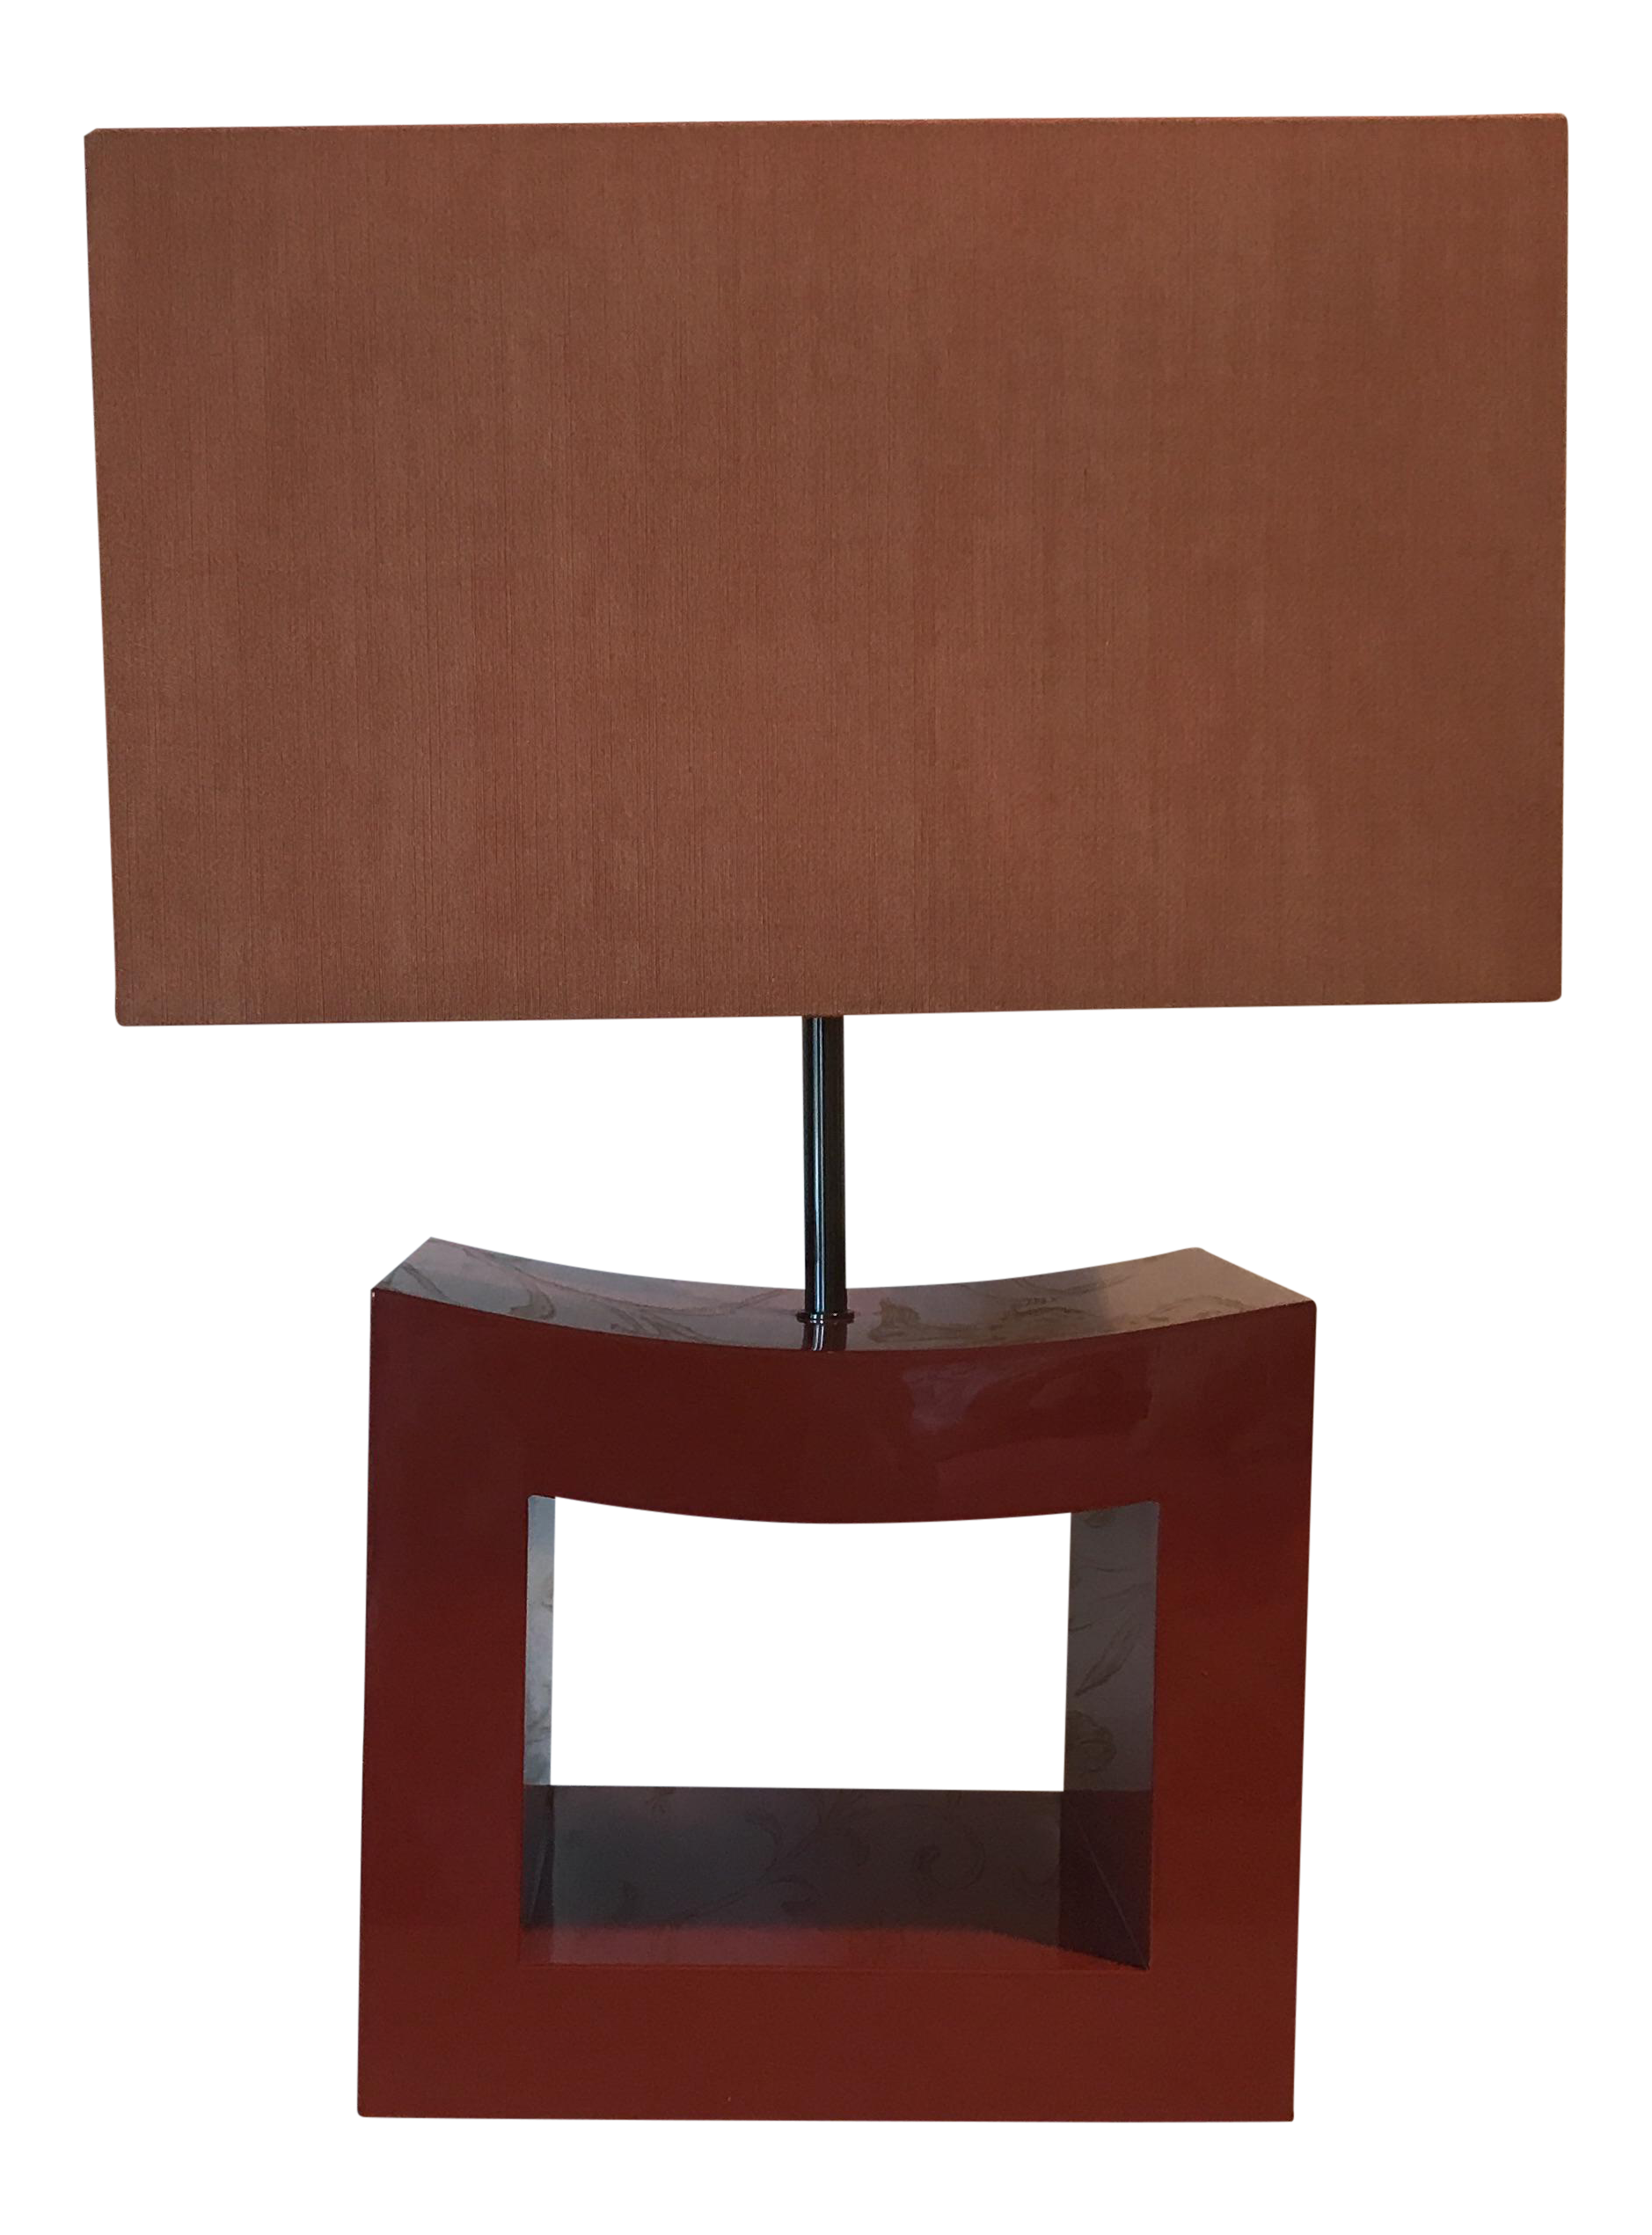 Vintage used new york table lamps chairish lighting table lamps armani casa orange lacquer lamp mozeypictures Choice Image